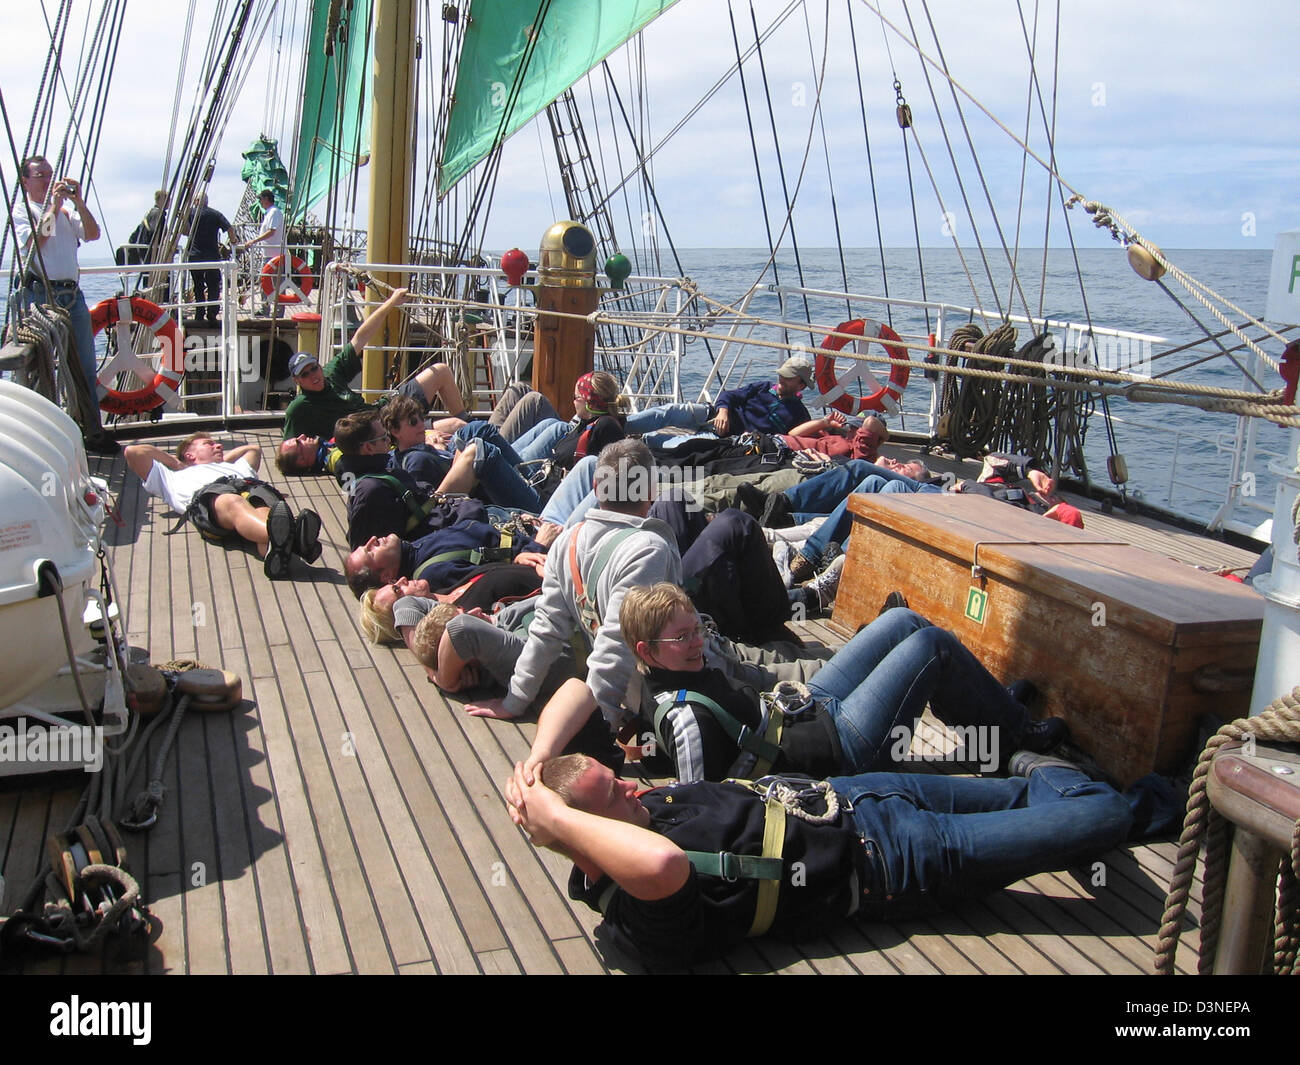 Tourists wait for the changing of the guards aboard the barque Alexander von Humboldt in the Pacific Ocean offshore - Stock Image